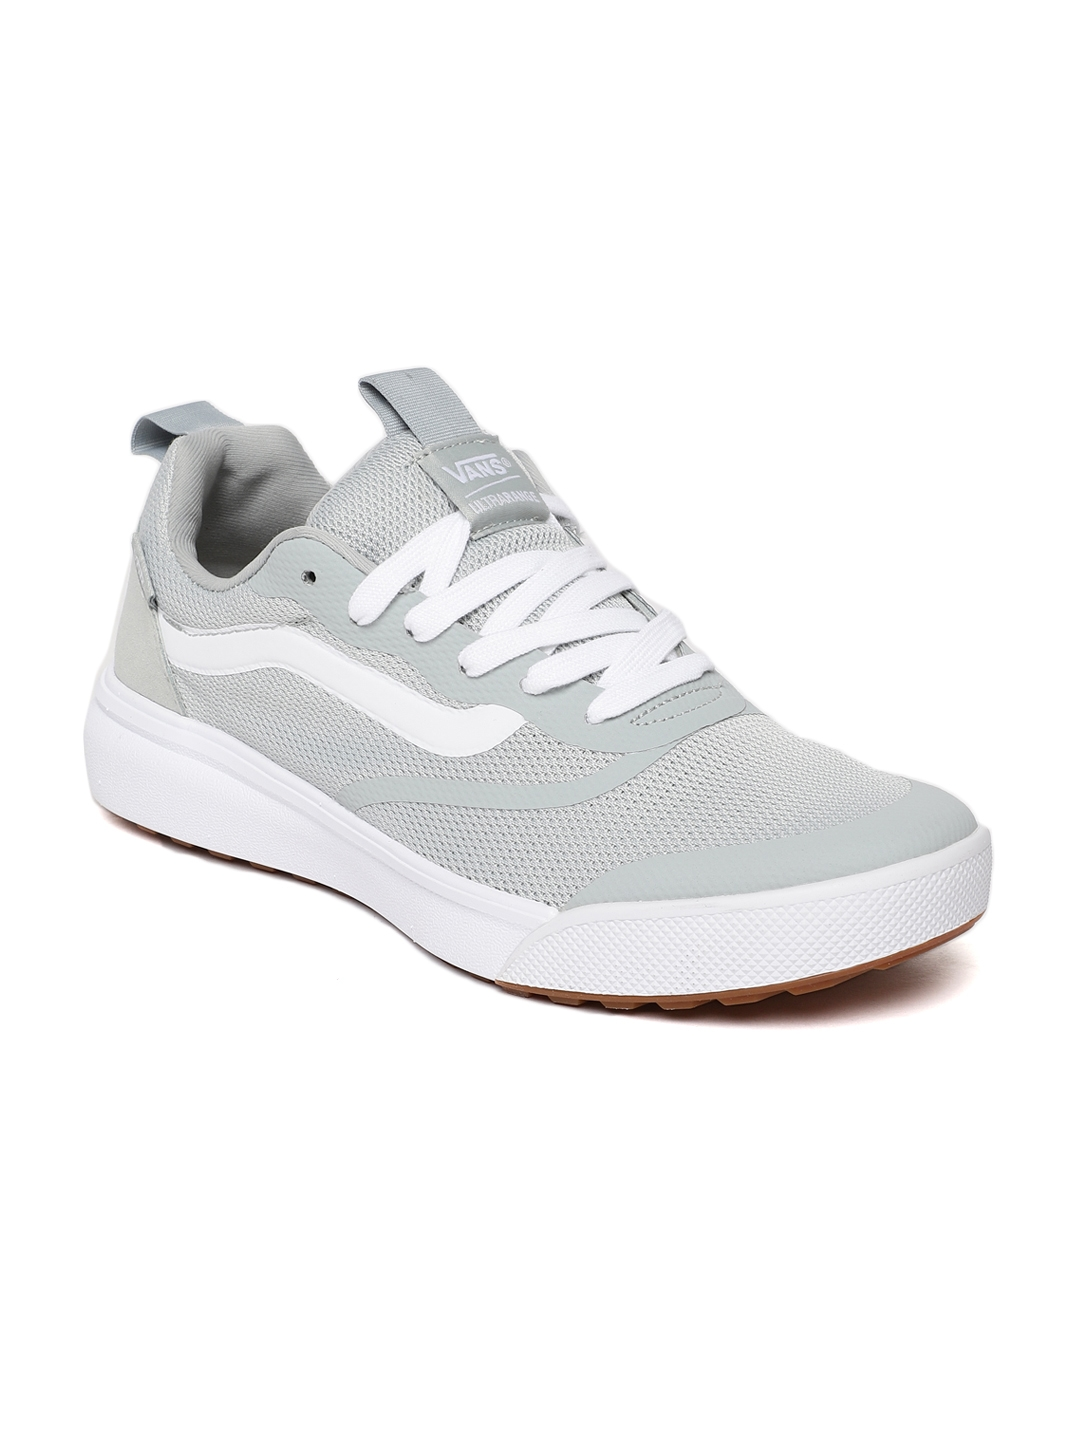 Buy Vans Unisex Grey UltraRange Rapidweld Sneakers - Casual Shoes ... 046ee698c